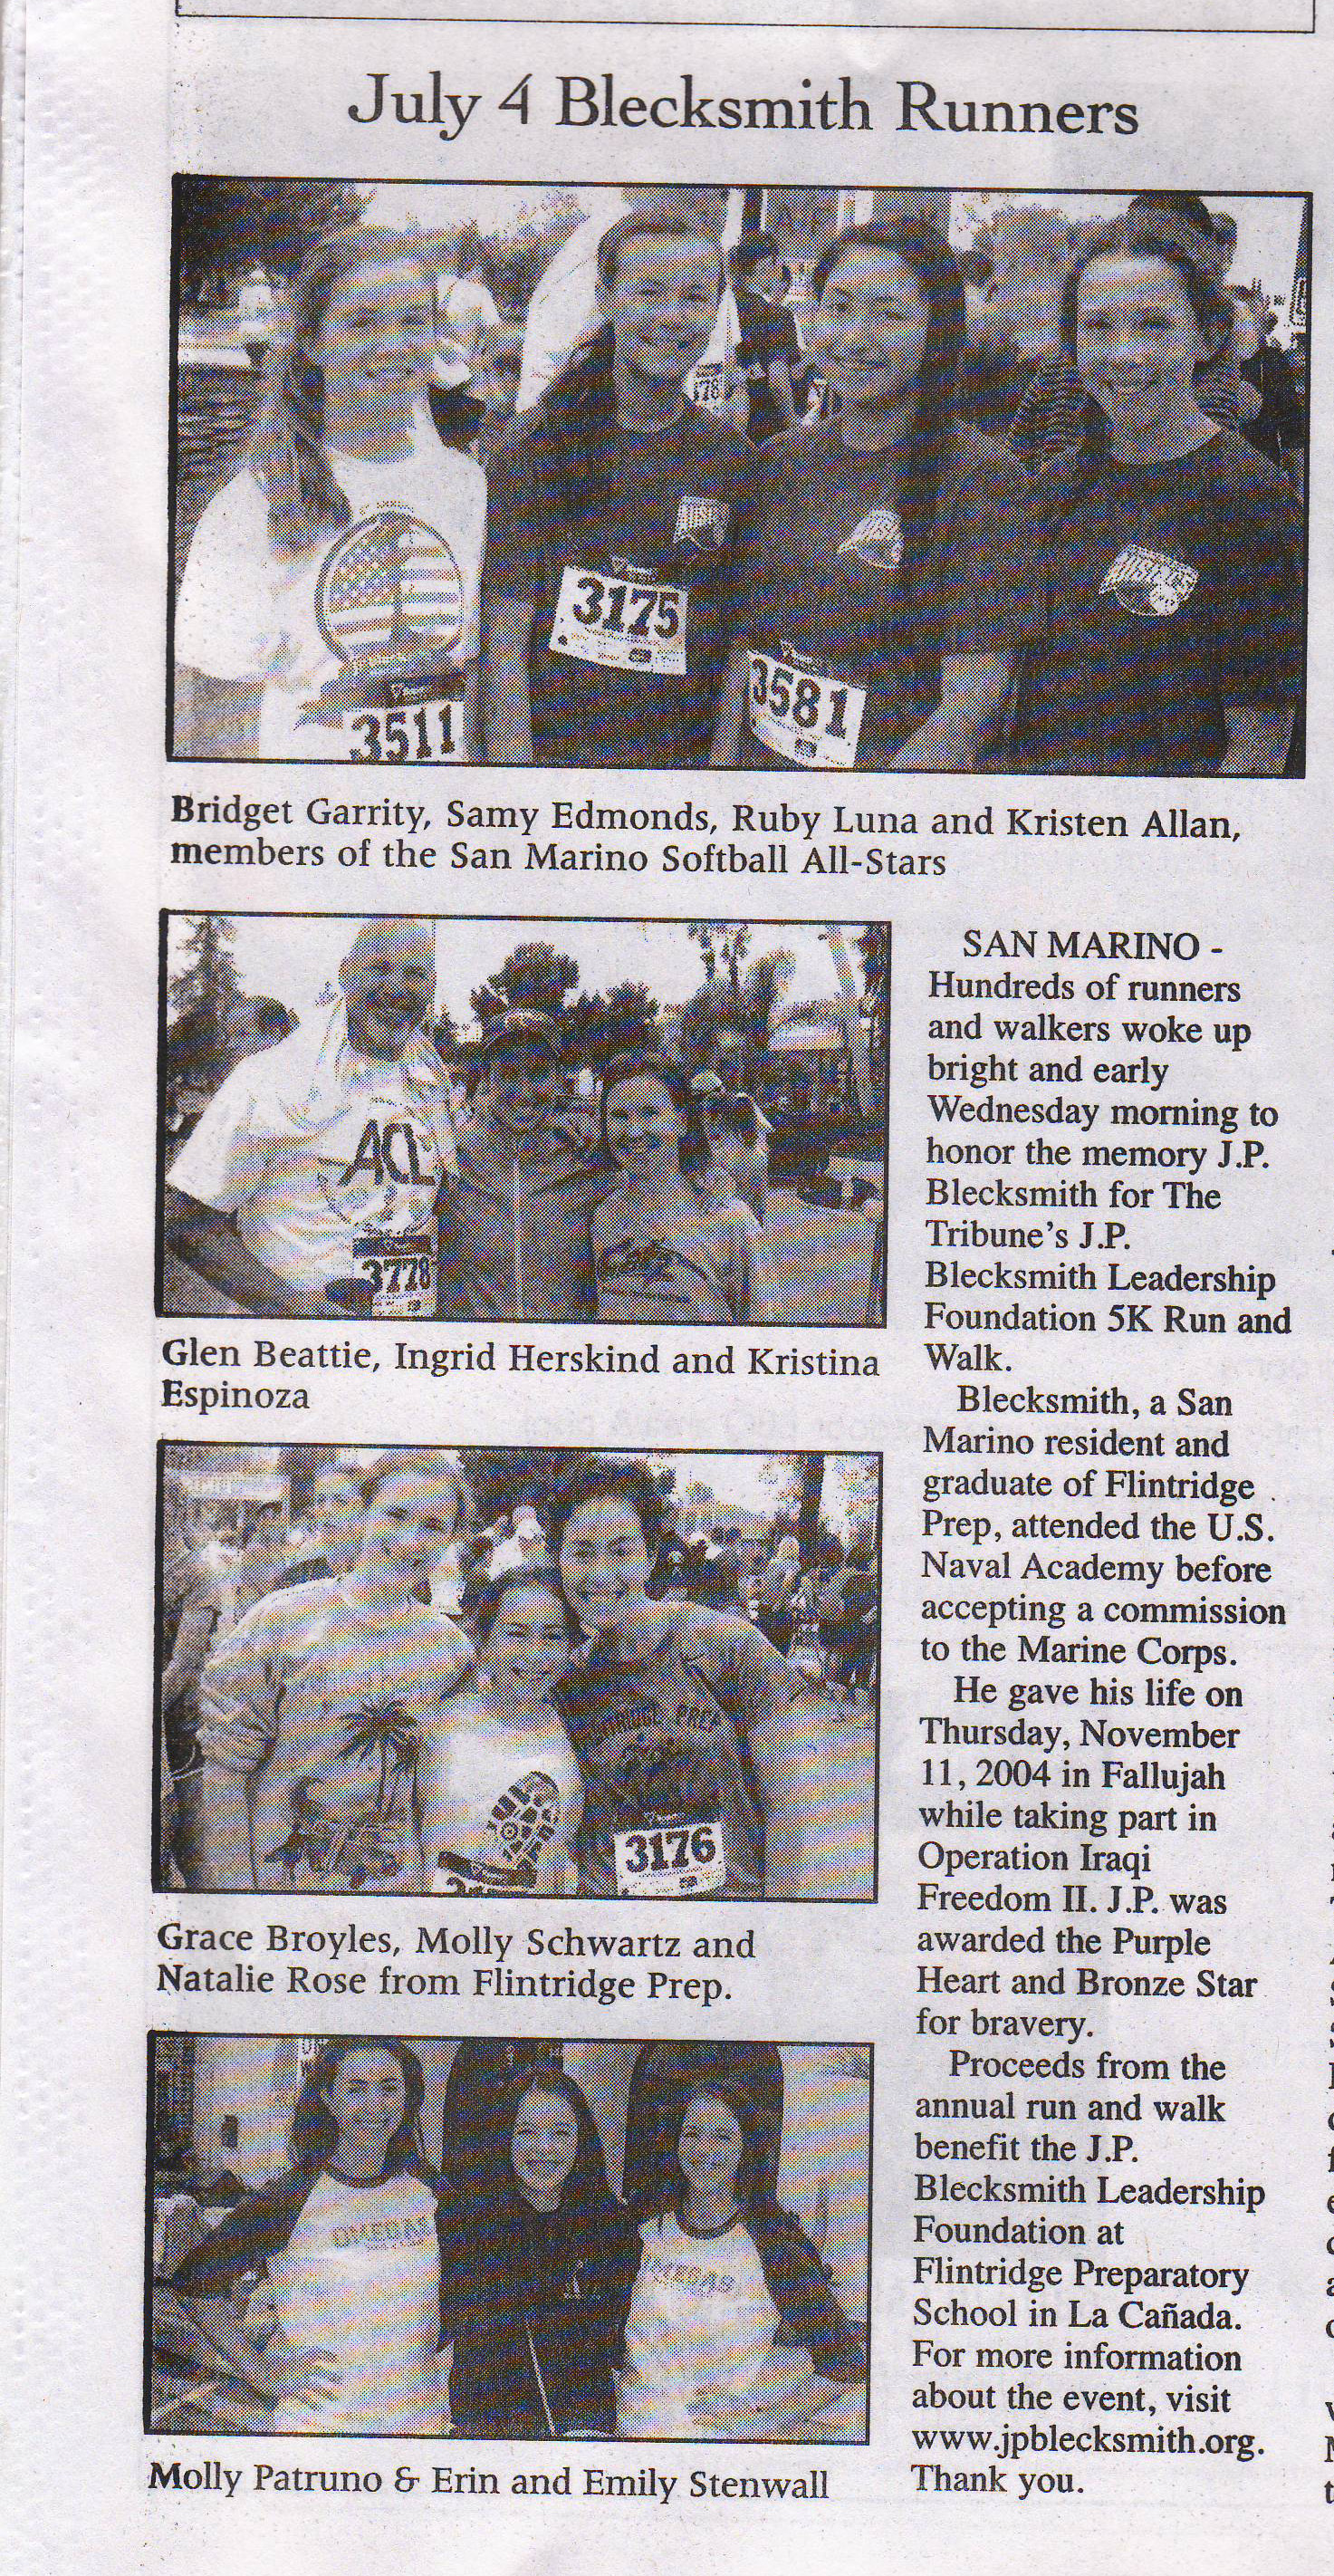 2012 Blecksmith - Tribune pictures of runners